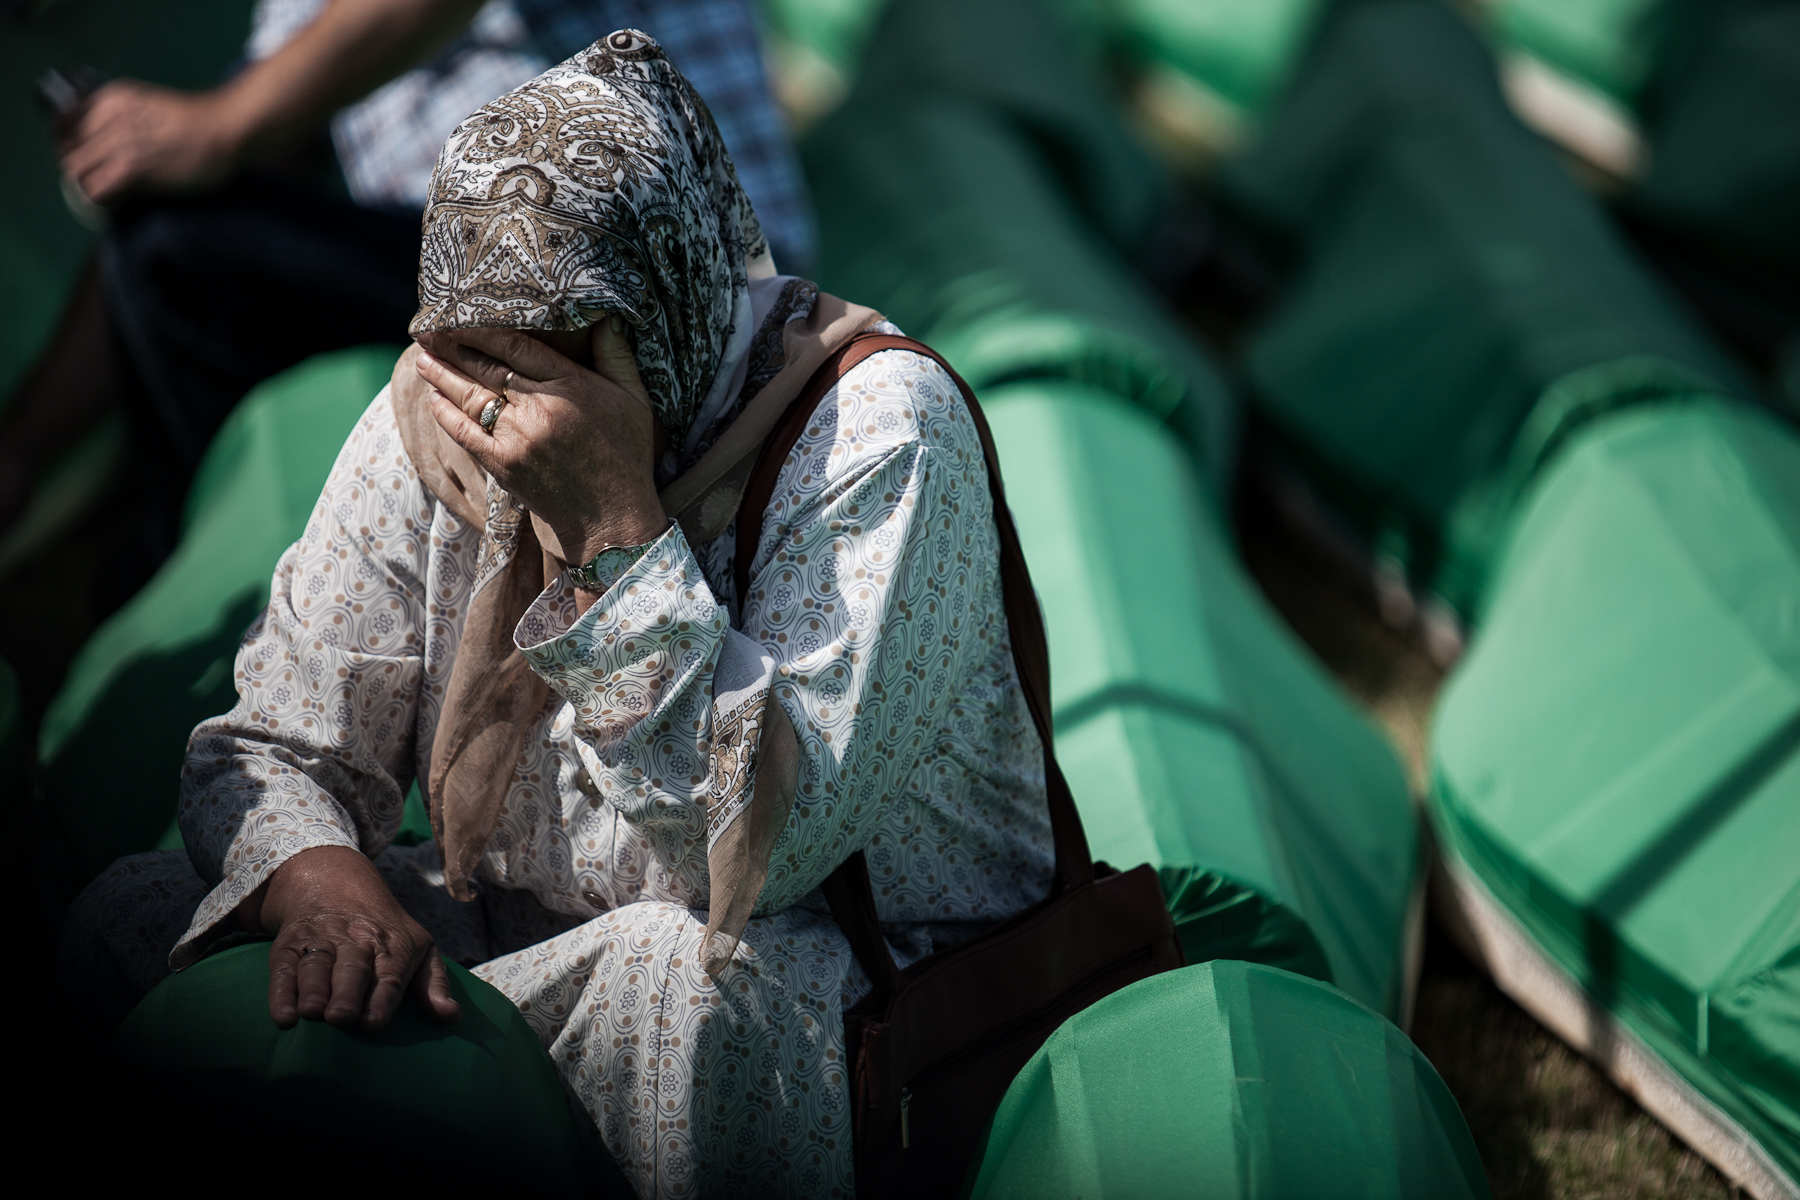 A woman cries at the coffin of a loved one at the Potocari cemetery in Srebrenica on July 11, 2010, before the memorial ceremony and mass burial of 775 newly identified victims of the 1995 Srebrenica massacre.